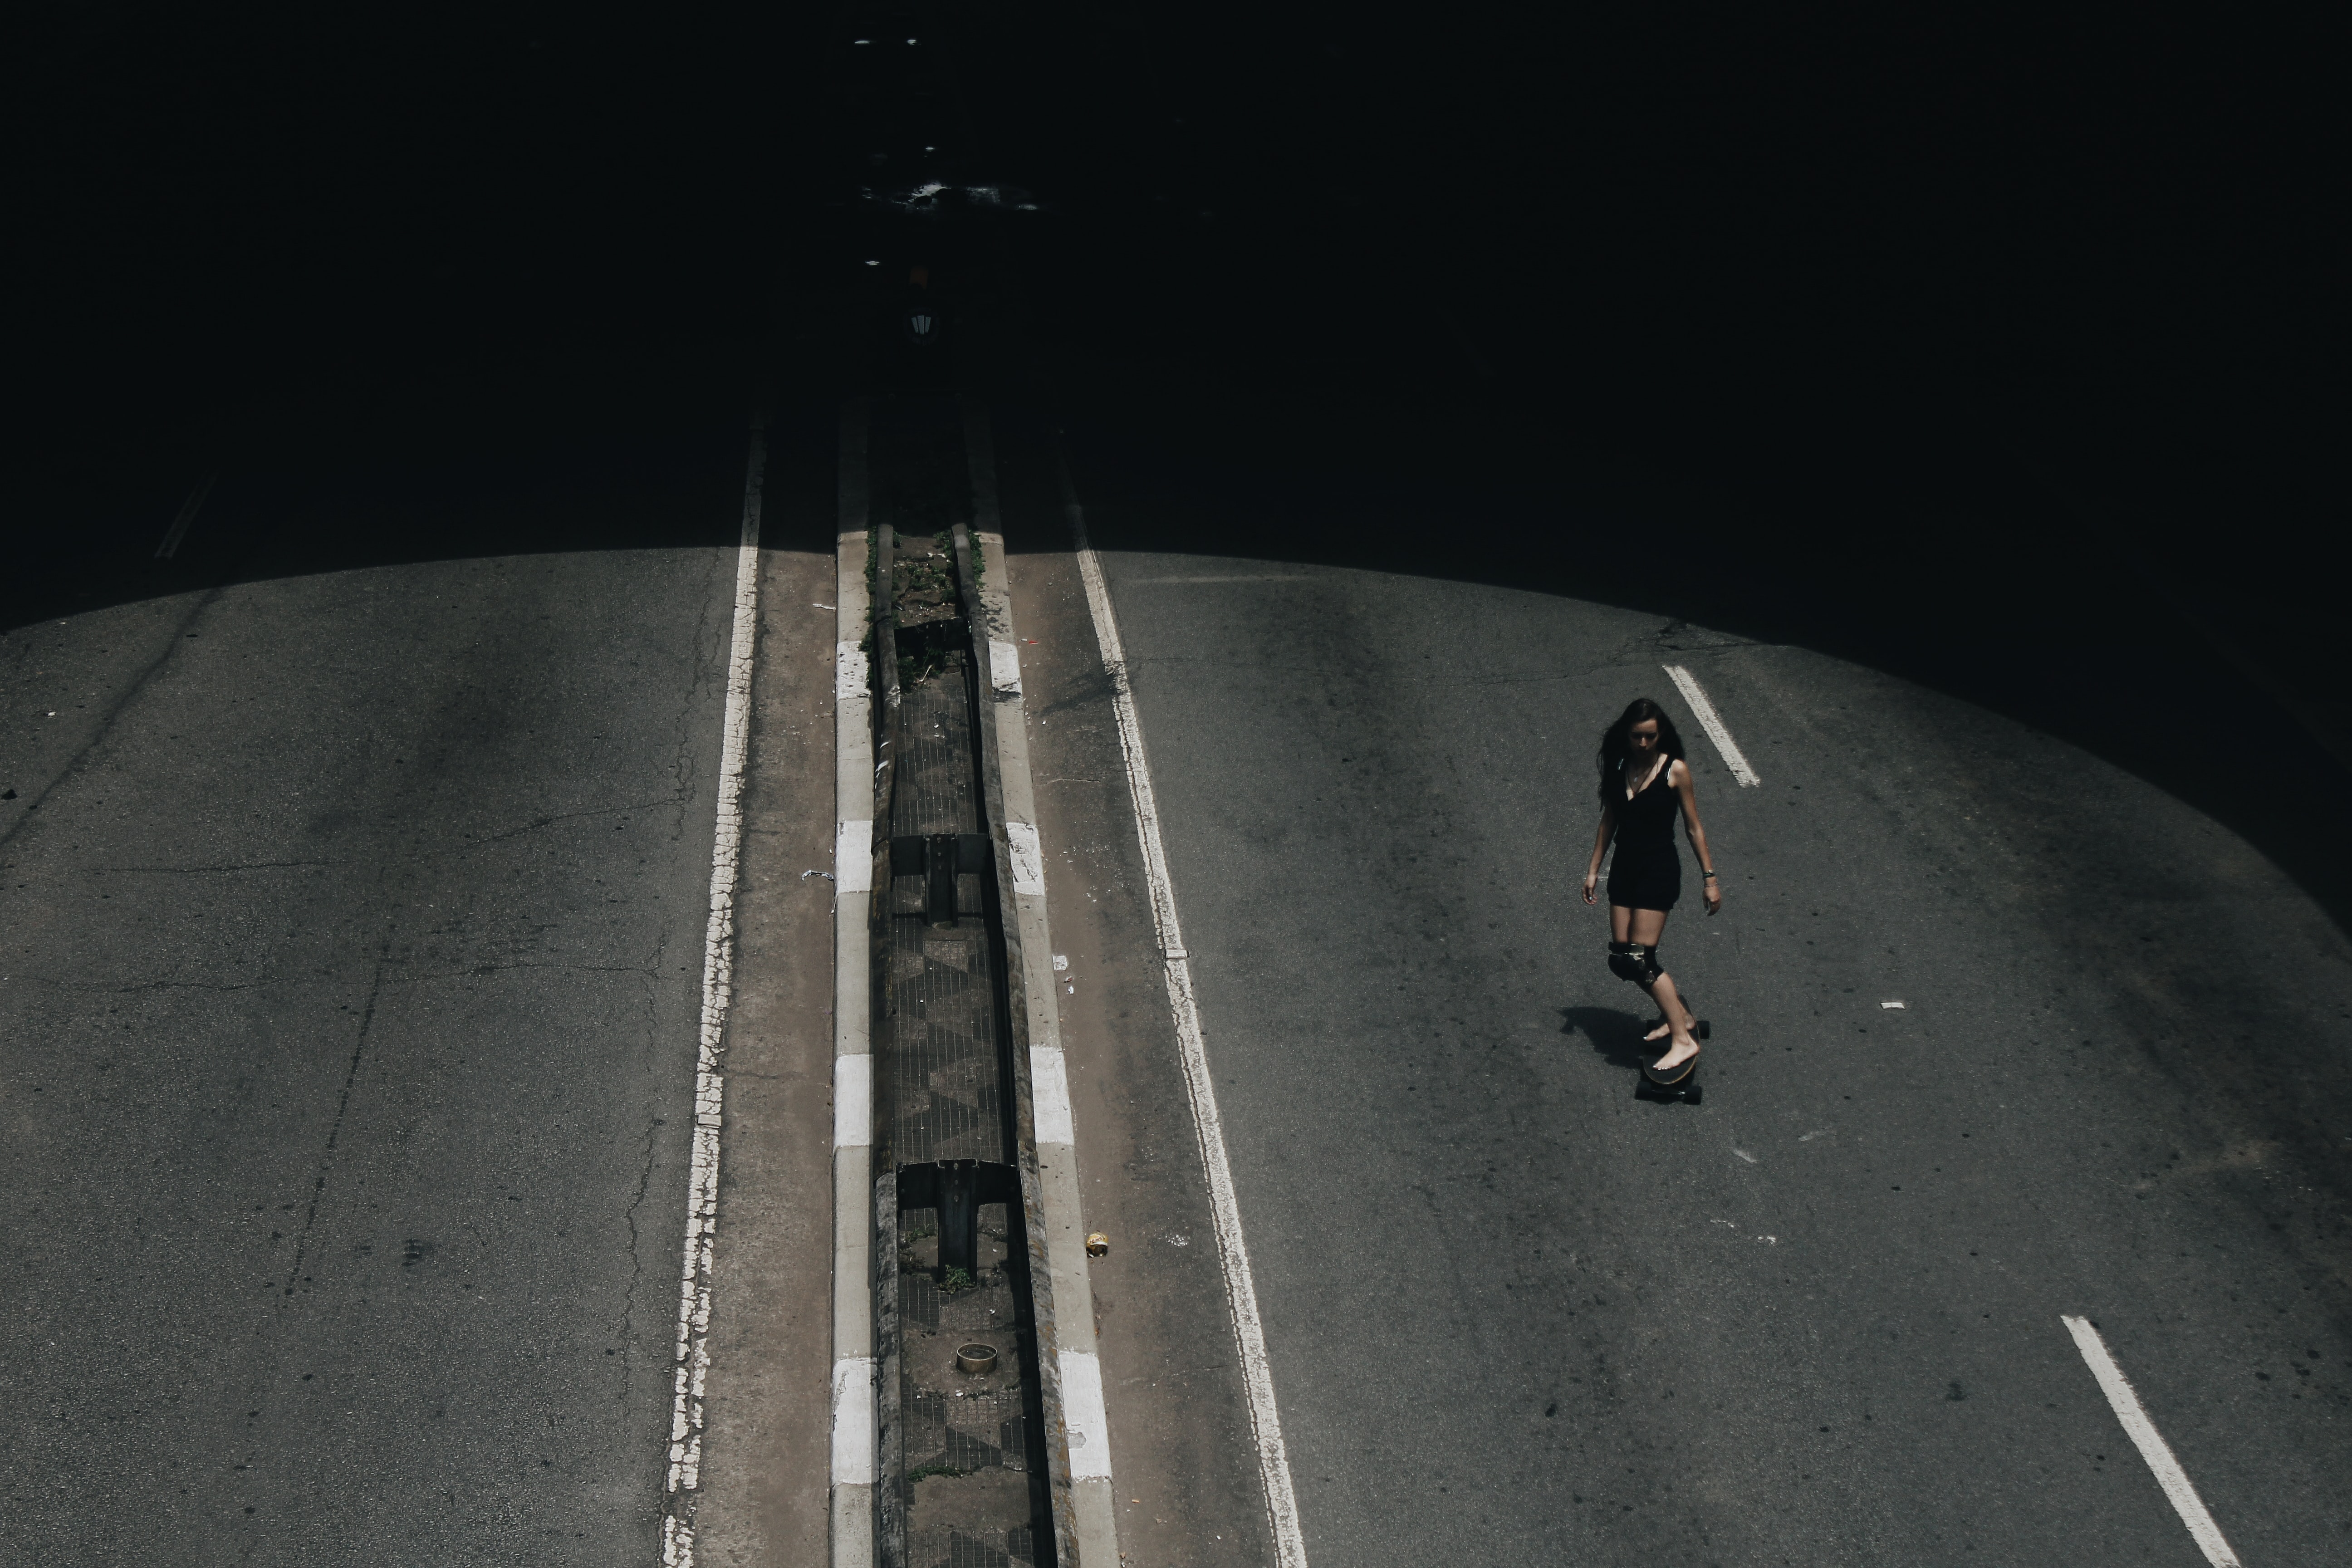 high angle photo of woman riding on skateboard passing road